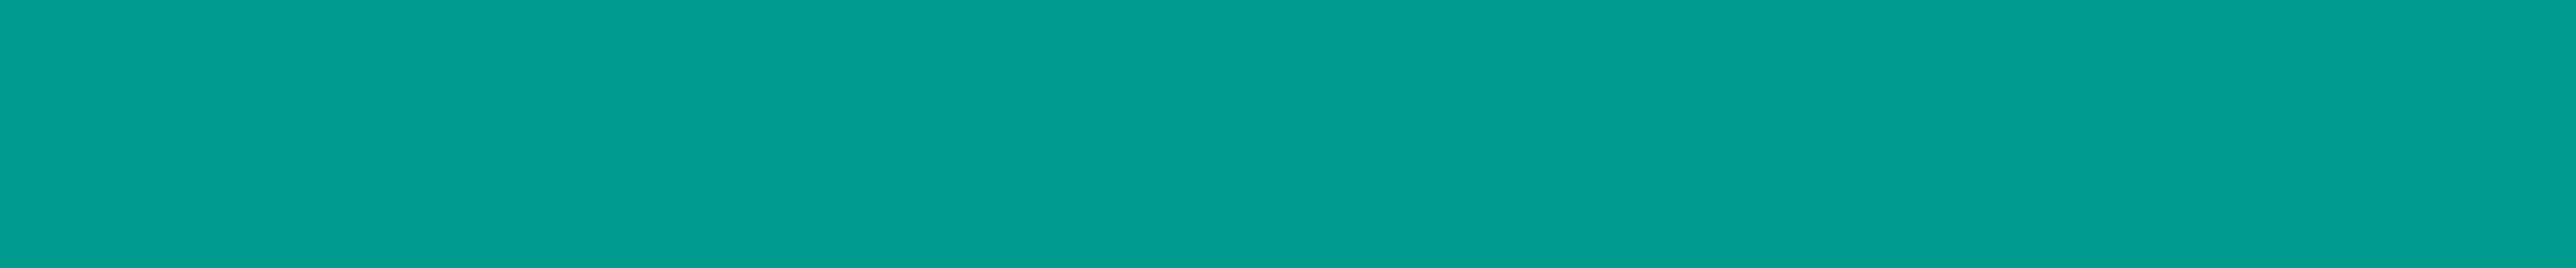 header turquoise